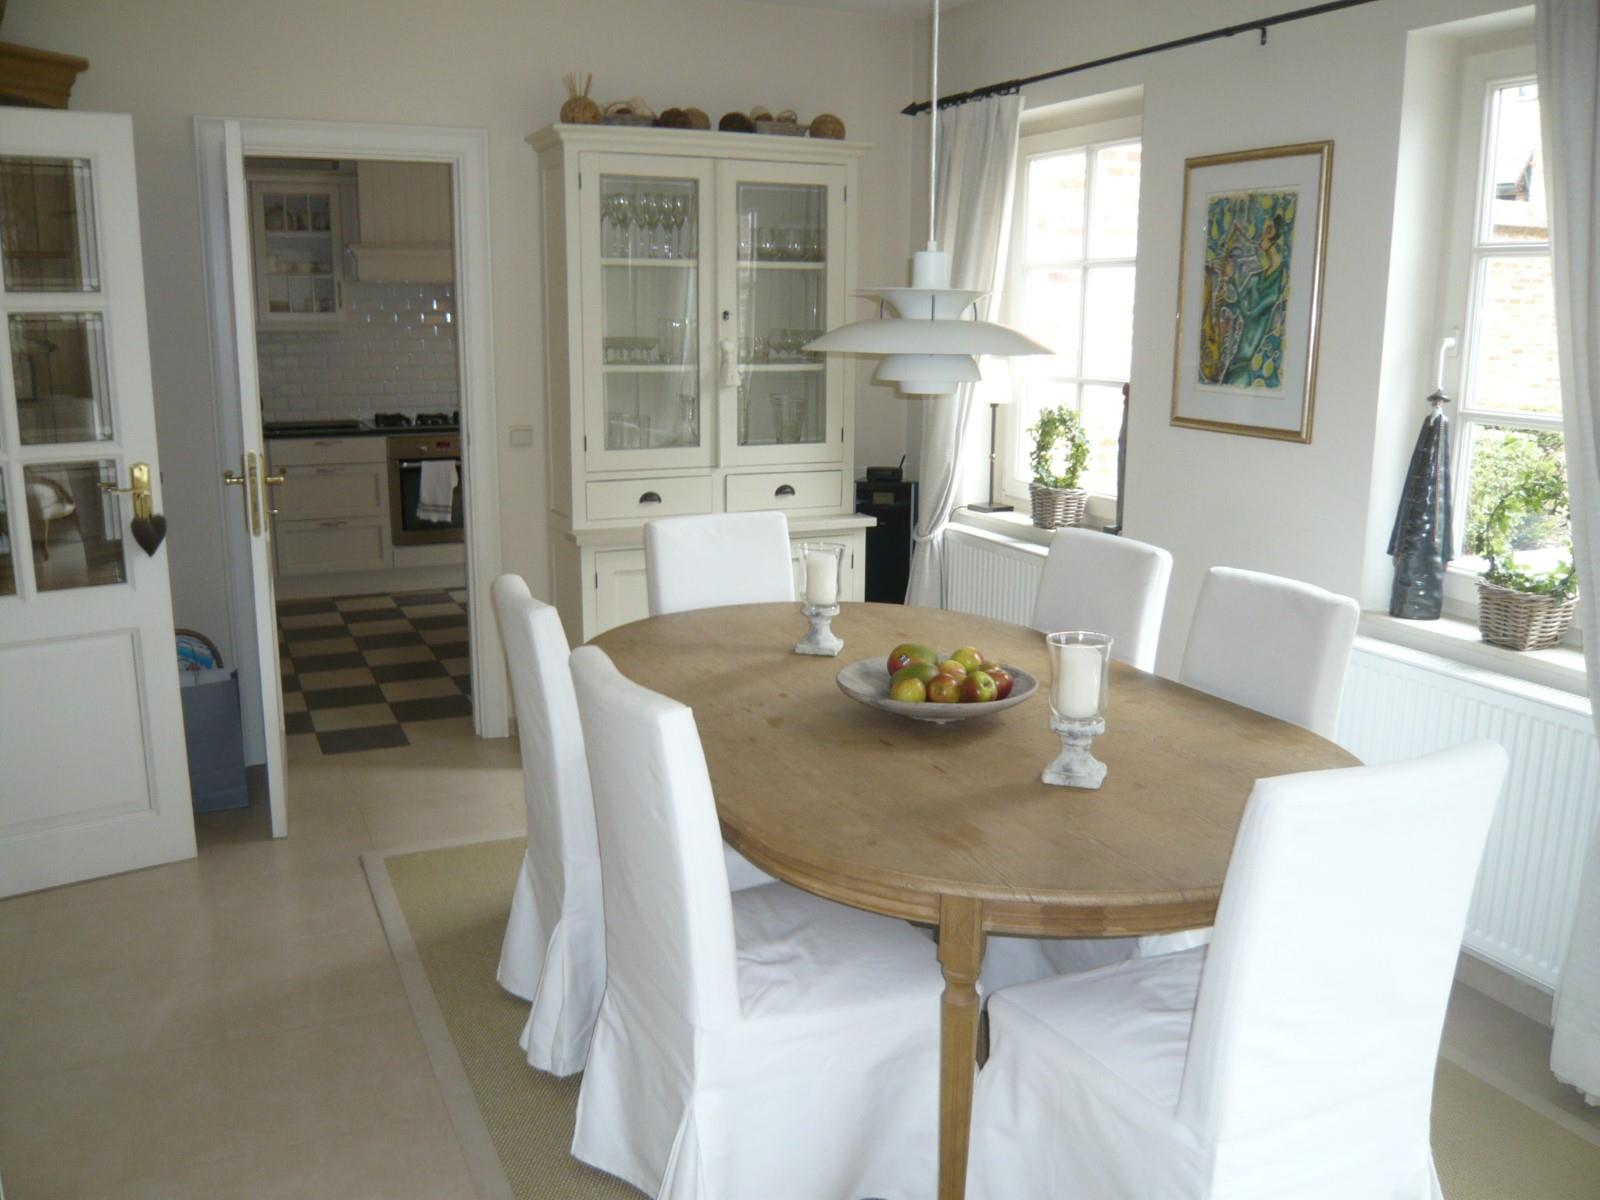 Family house - Braine-l'Alleud - #3032849-10